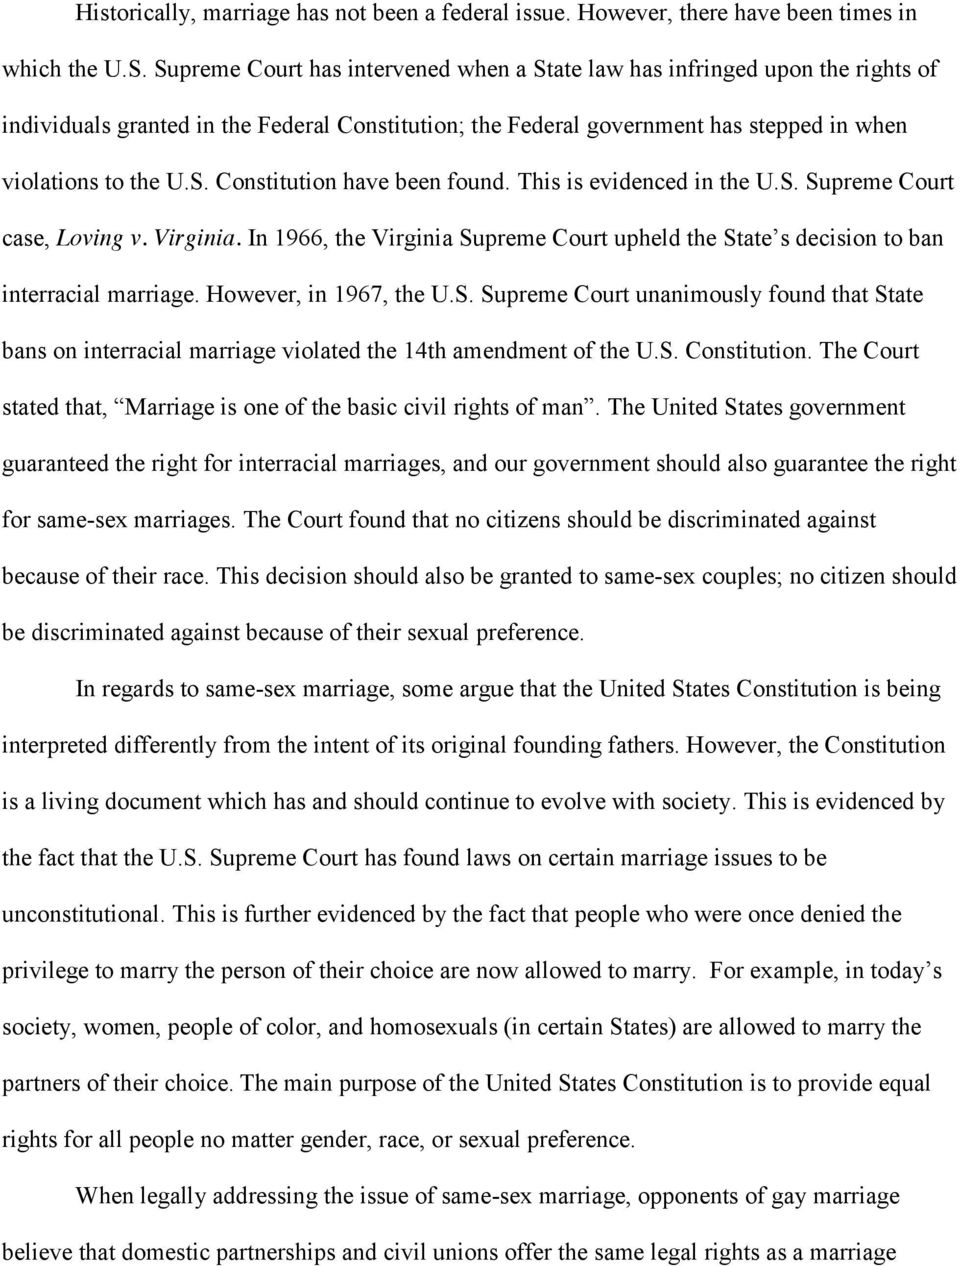 This is evidenced in the U.S. Supreme Court case, Loving v. Virginia. In 1966, the Virginia Supreme Court upheld the State s decision to ban interracial marriage. However, in 1967, the U.S. Supreme Court unanimously found that State bans on interracial marriage violated the 14th amendment of the U.